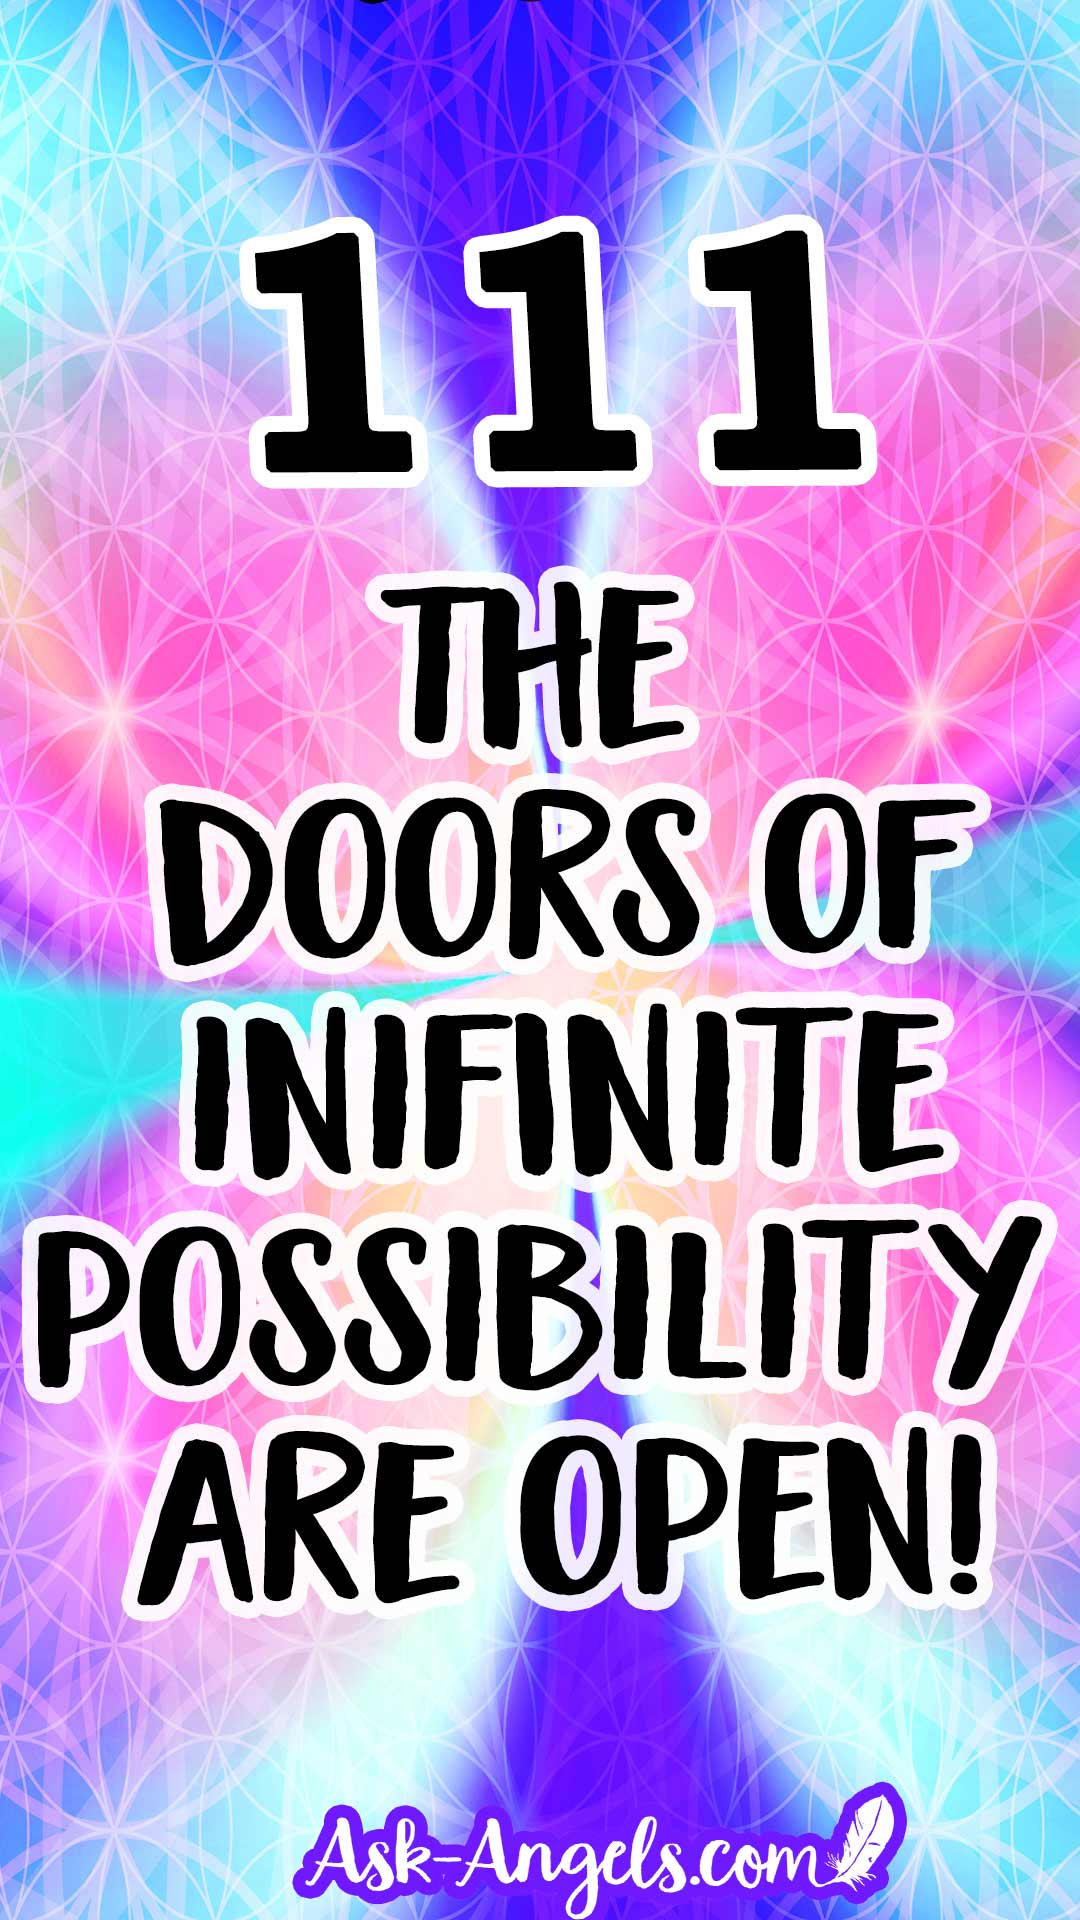 111 - The doors of infinite possibility are open